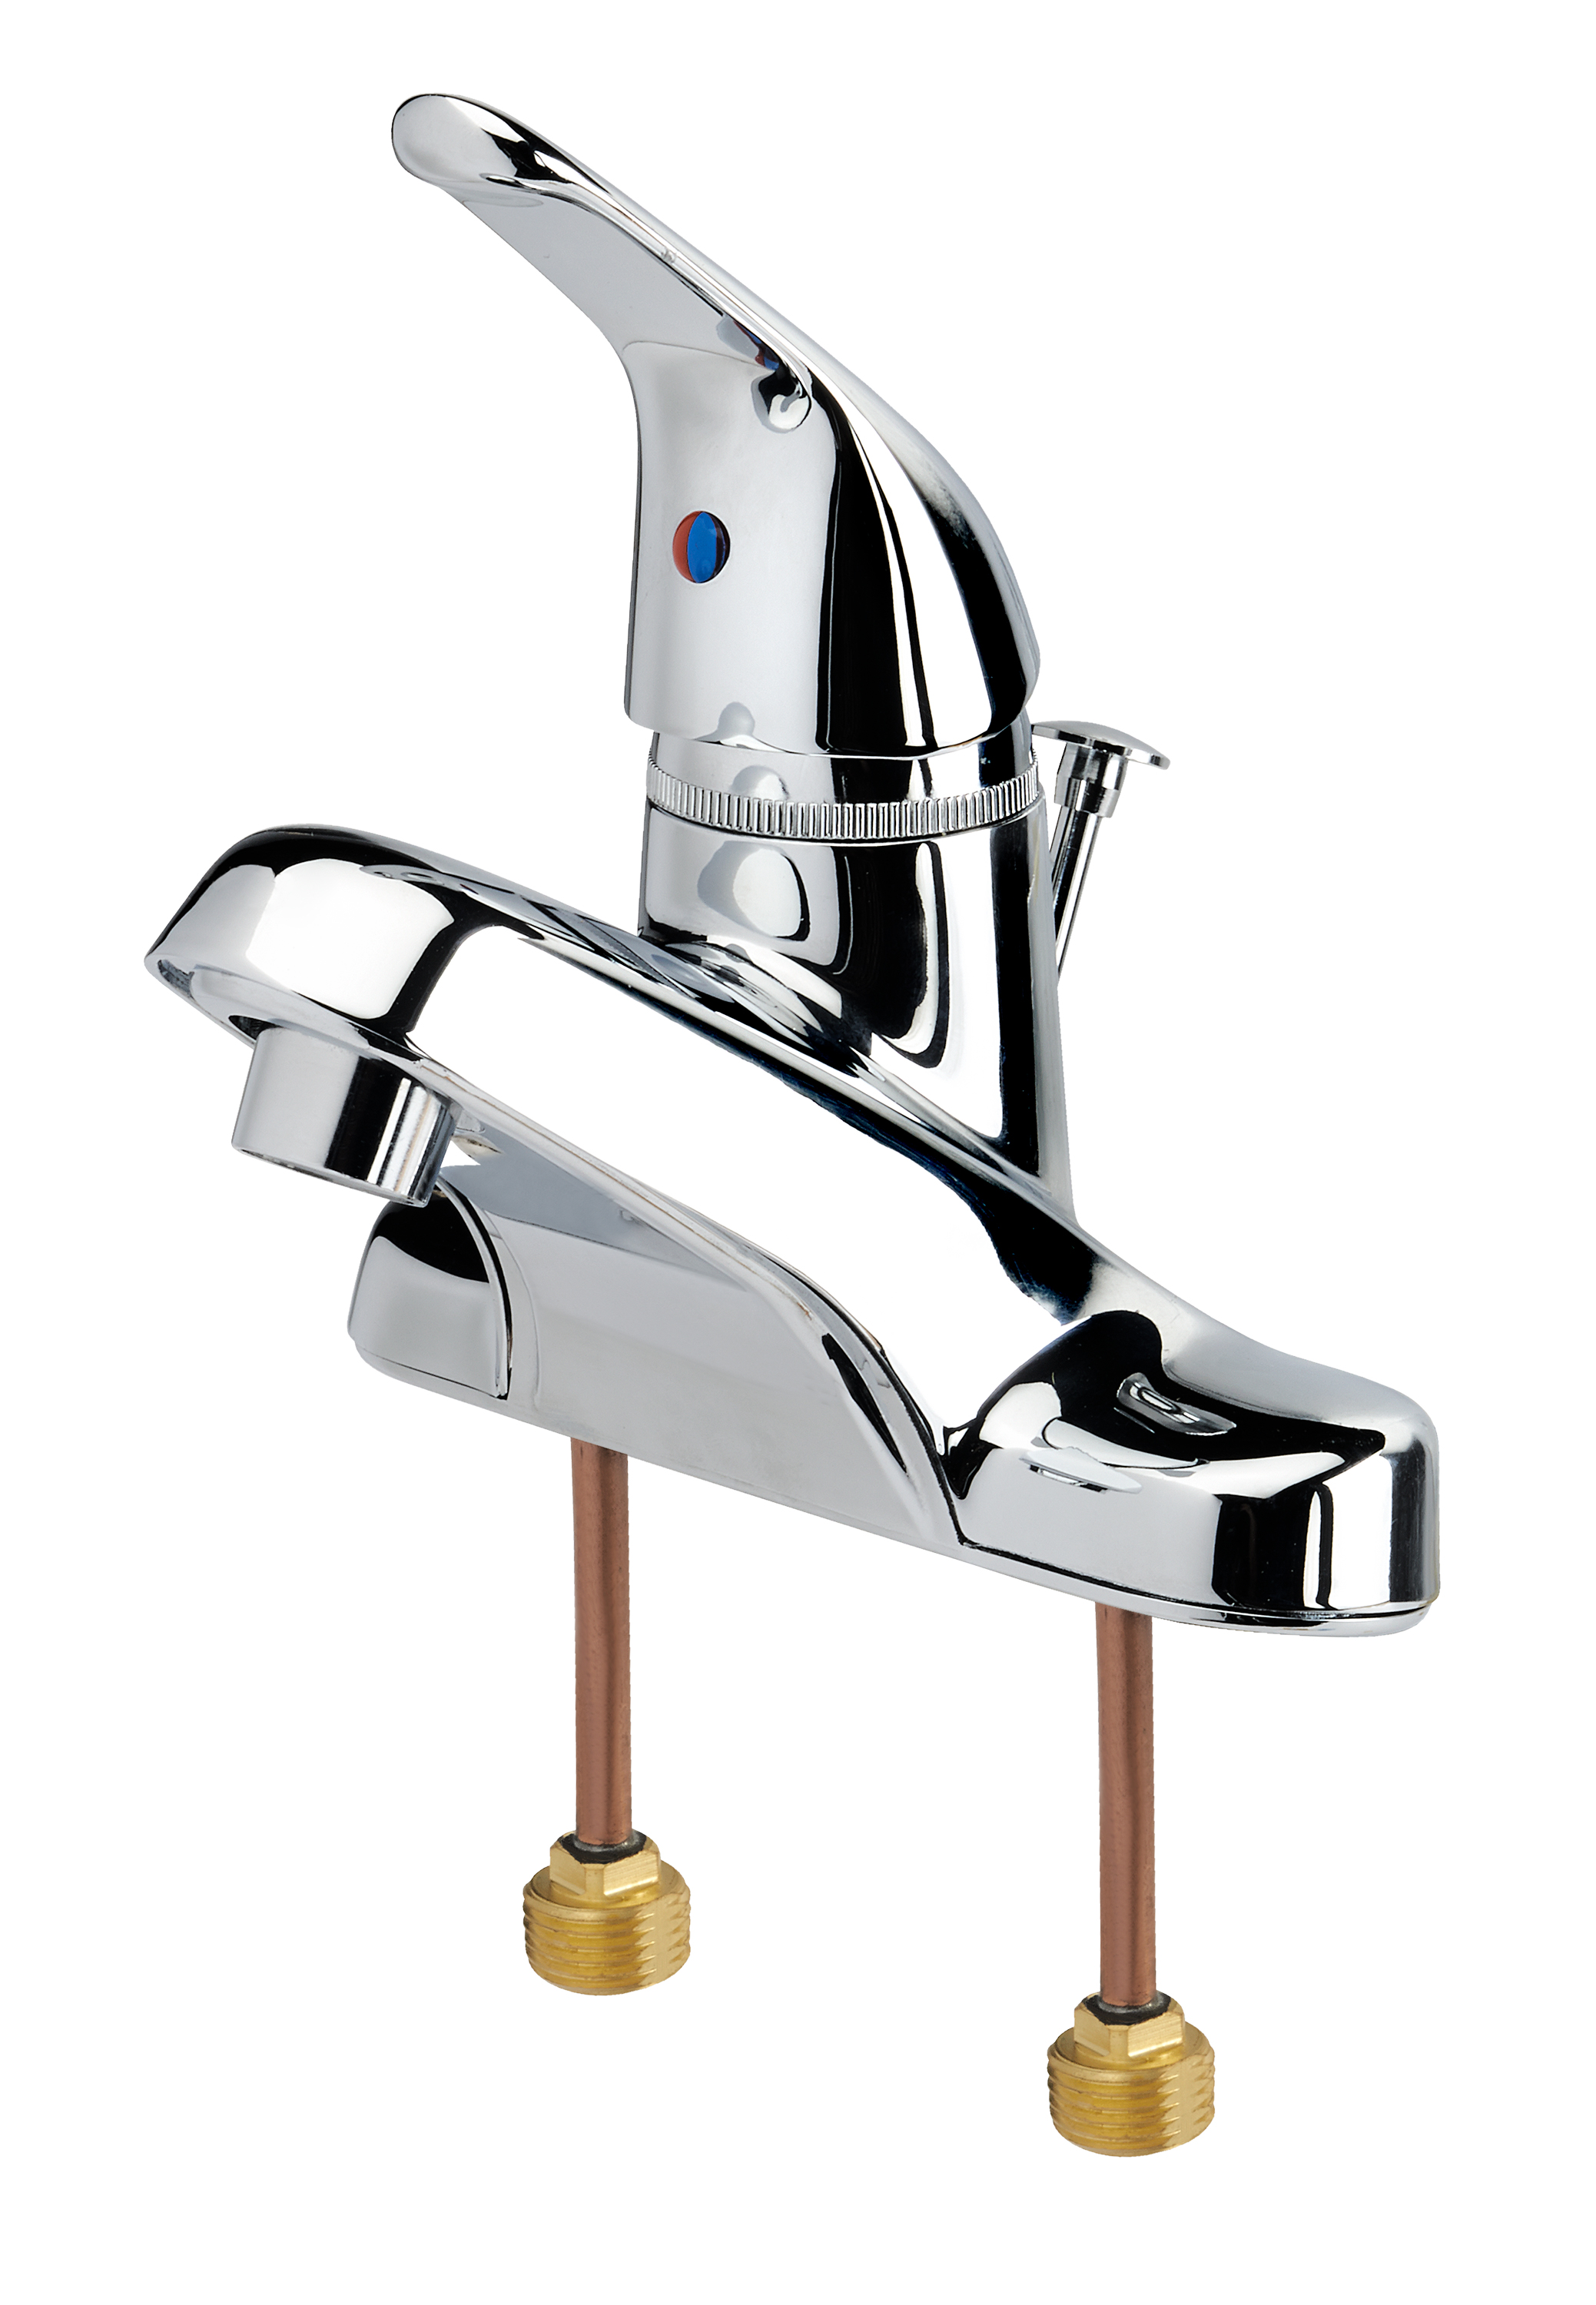 Krowne Metal 12-525L faucet, single lever